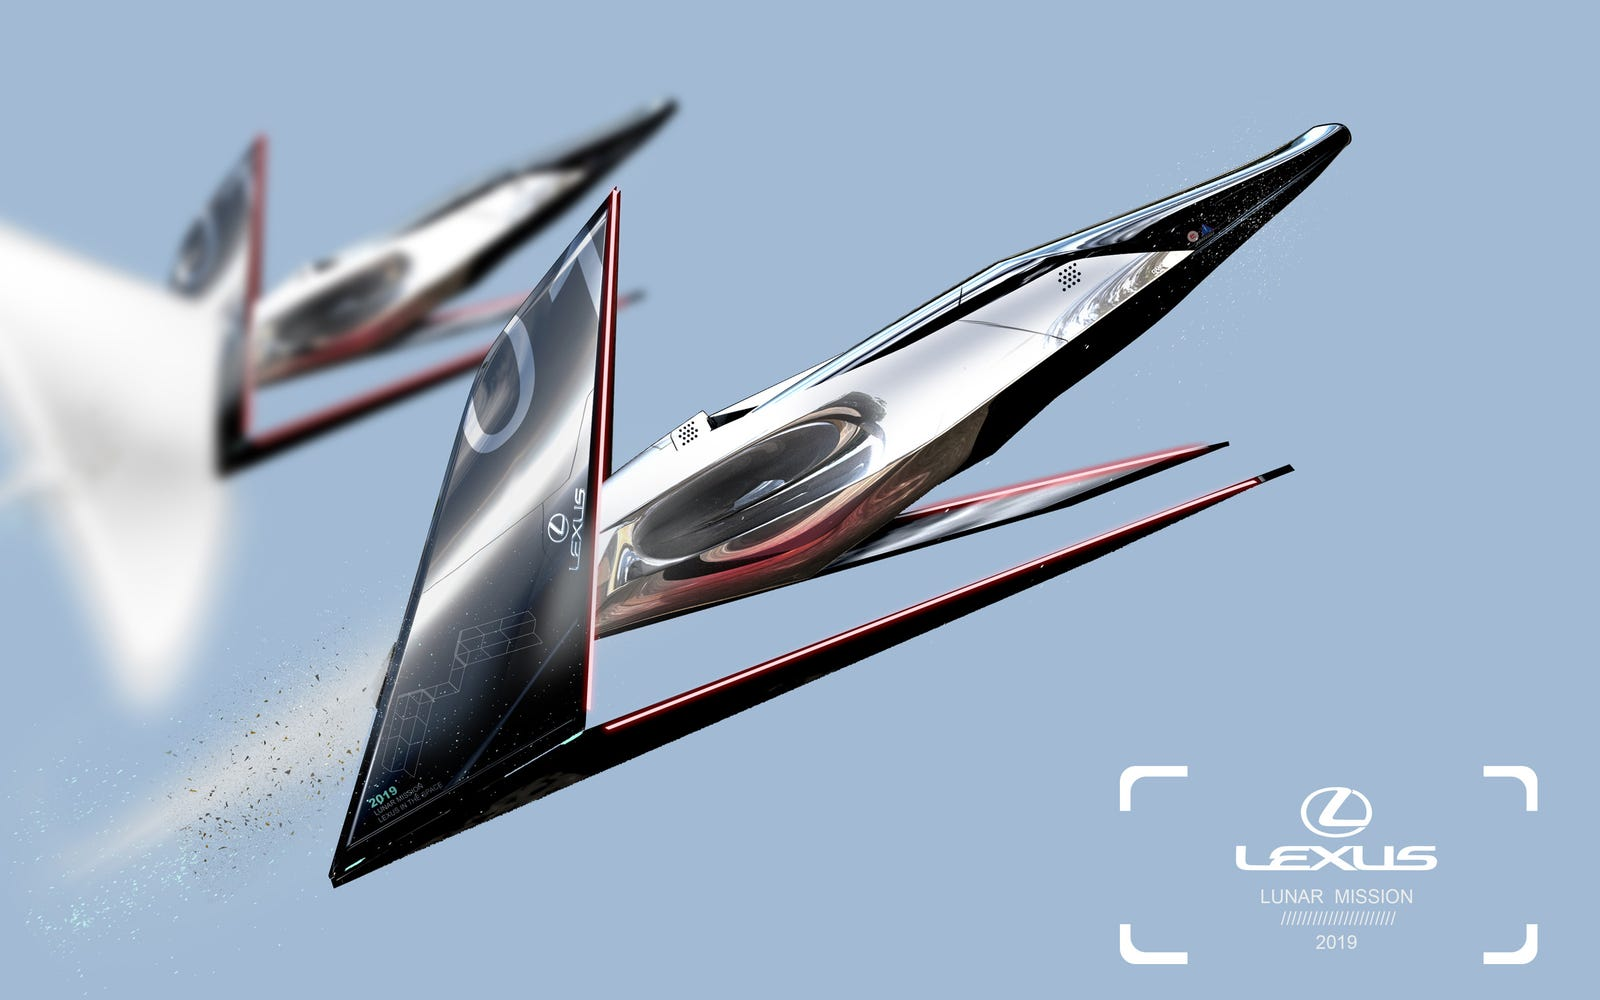 The Lexus Lunar Mission's design integrates a liquid side body, which can reflect the universe while flying toward the moon. The wings are the iconic spindle shape integrated with the Lexus symbol mark as a main geometry.